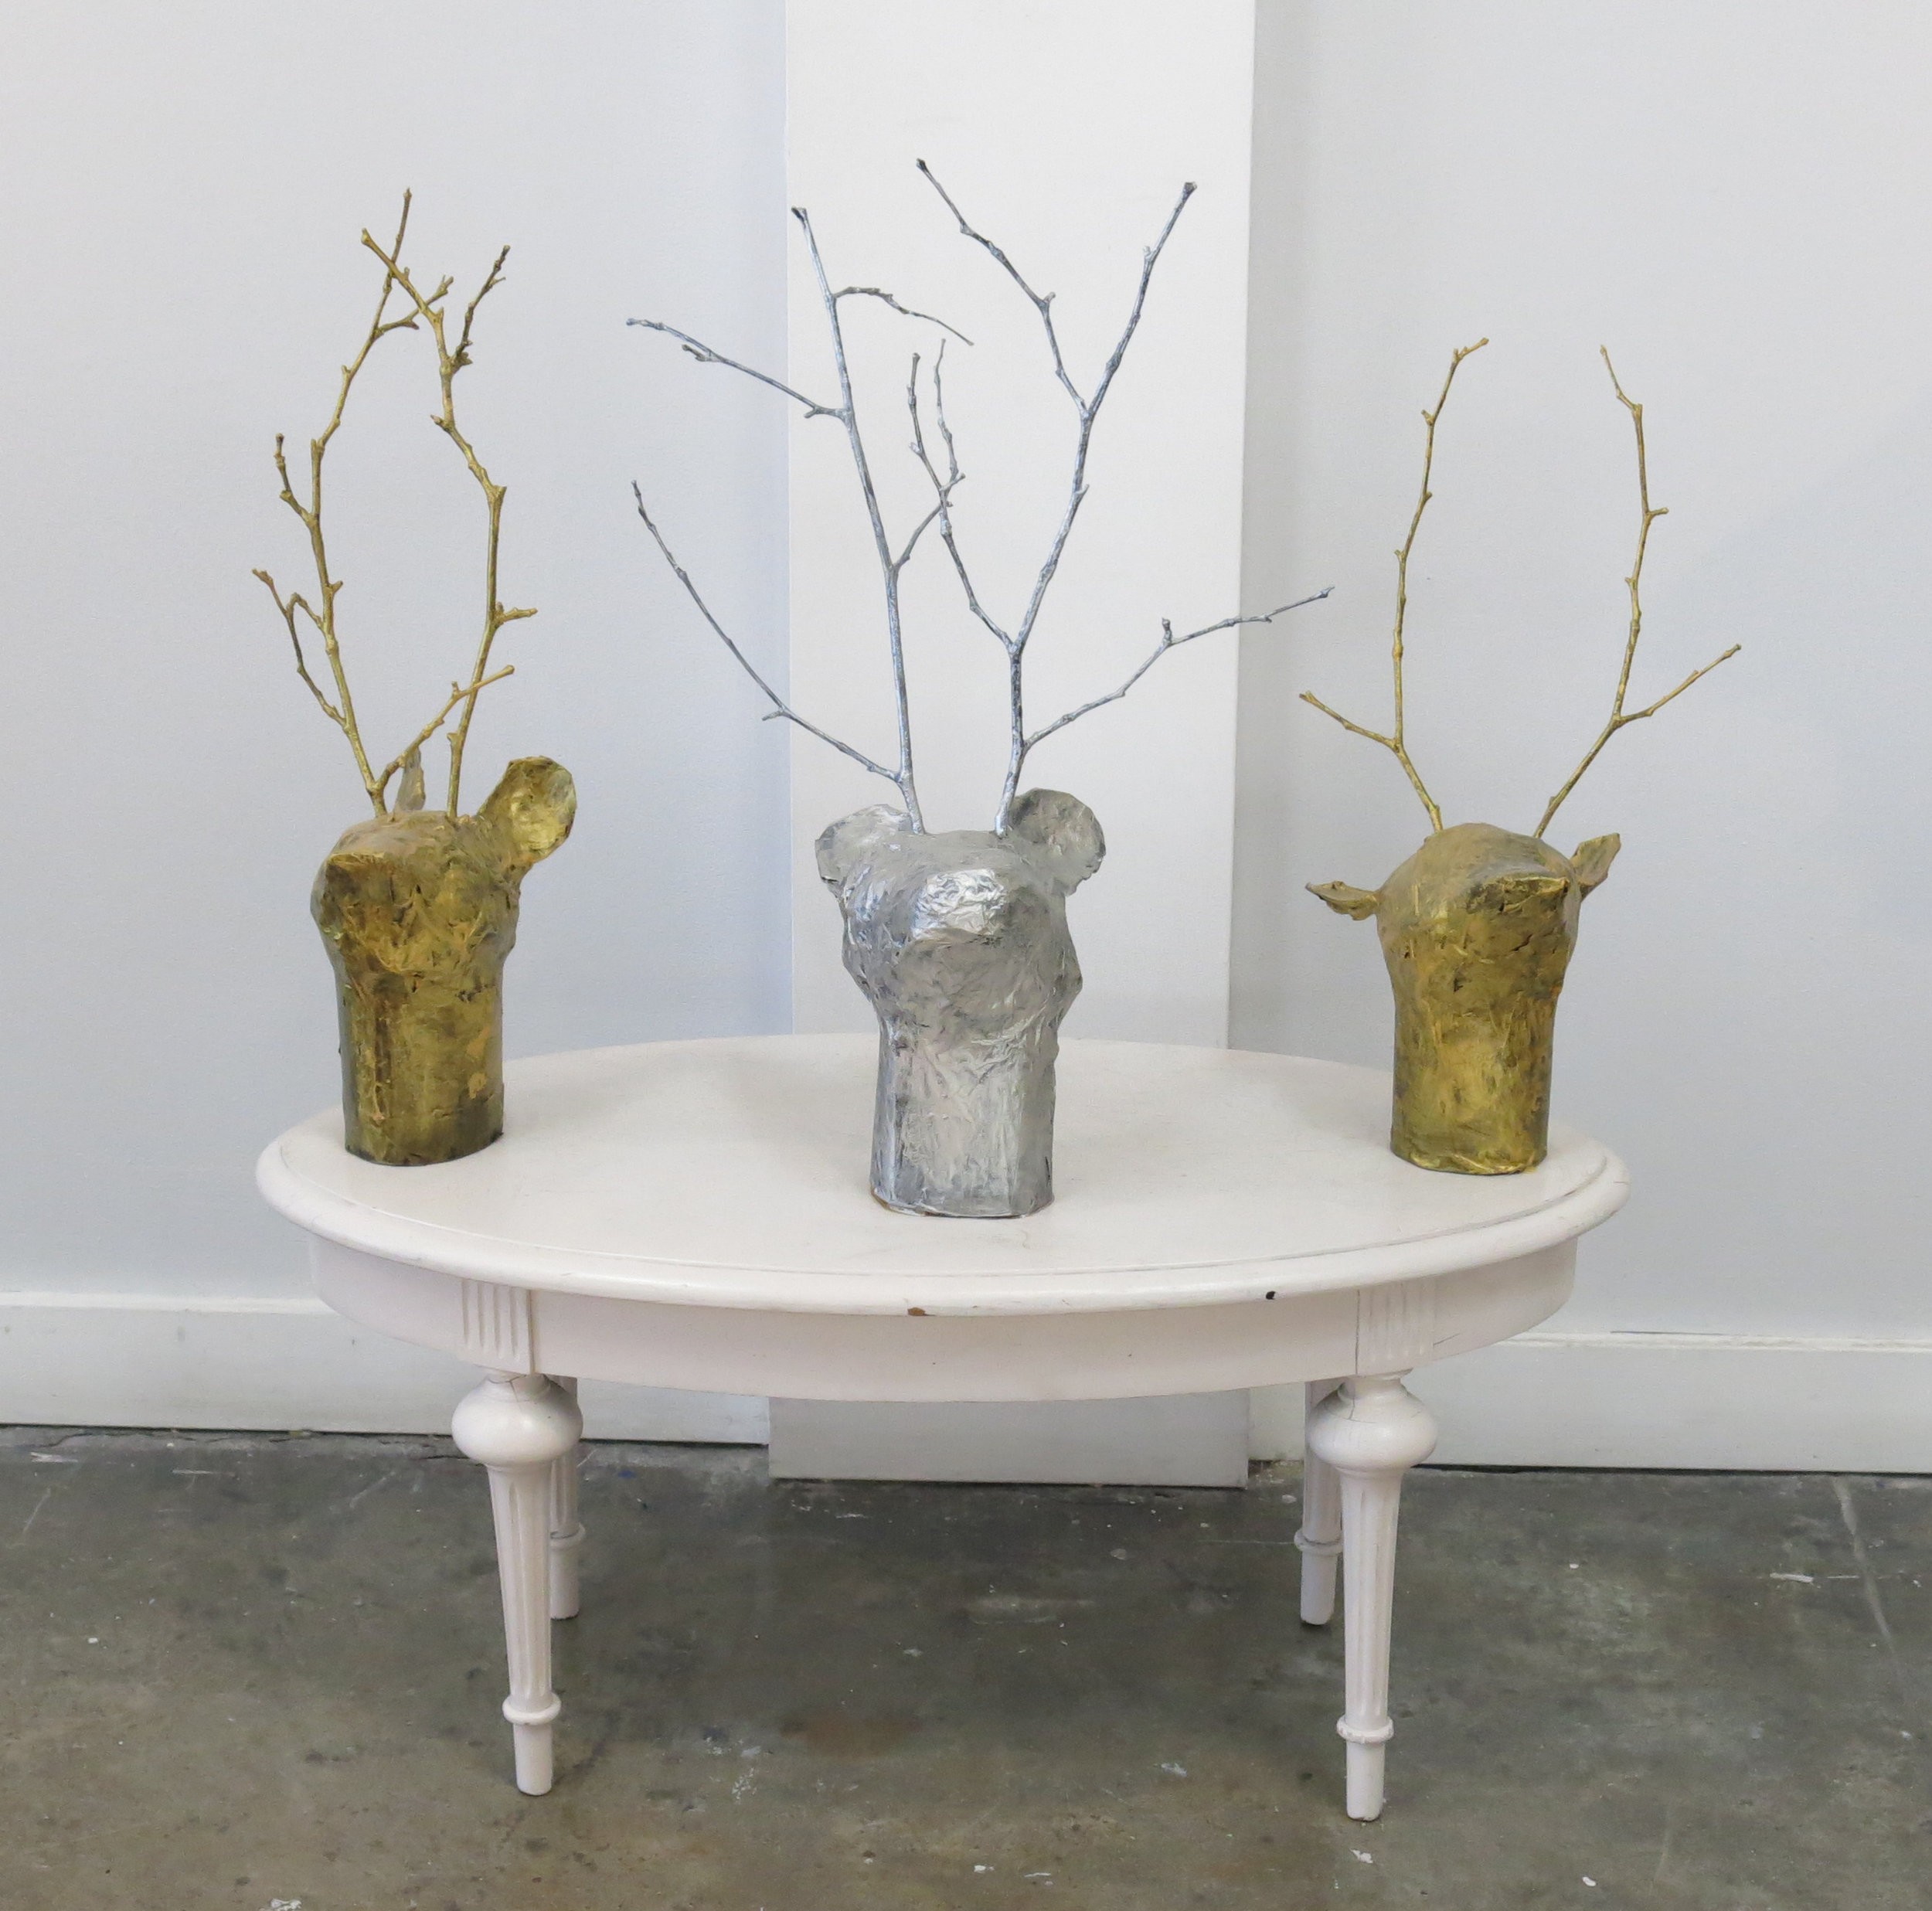 Eleanor Chackee, Untitled (EC 003), 2015, Mixed media, 37 x 35 x 15 inches